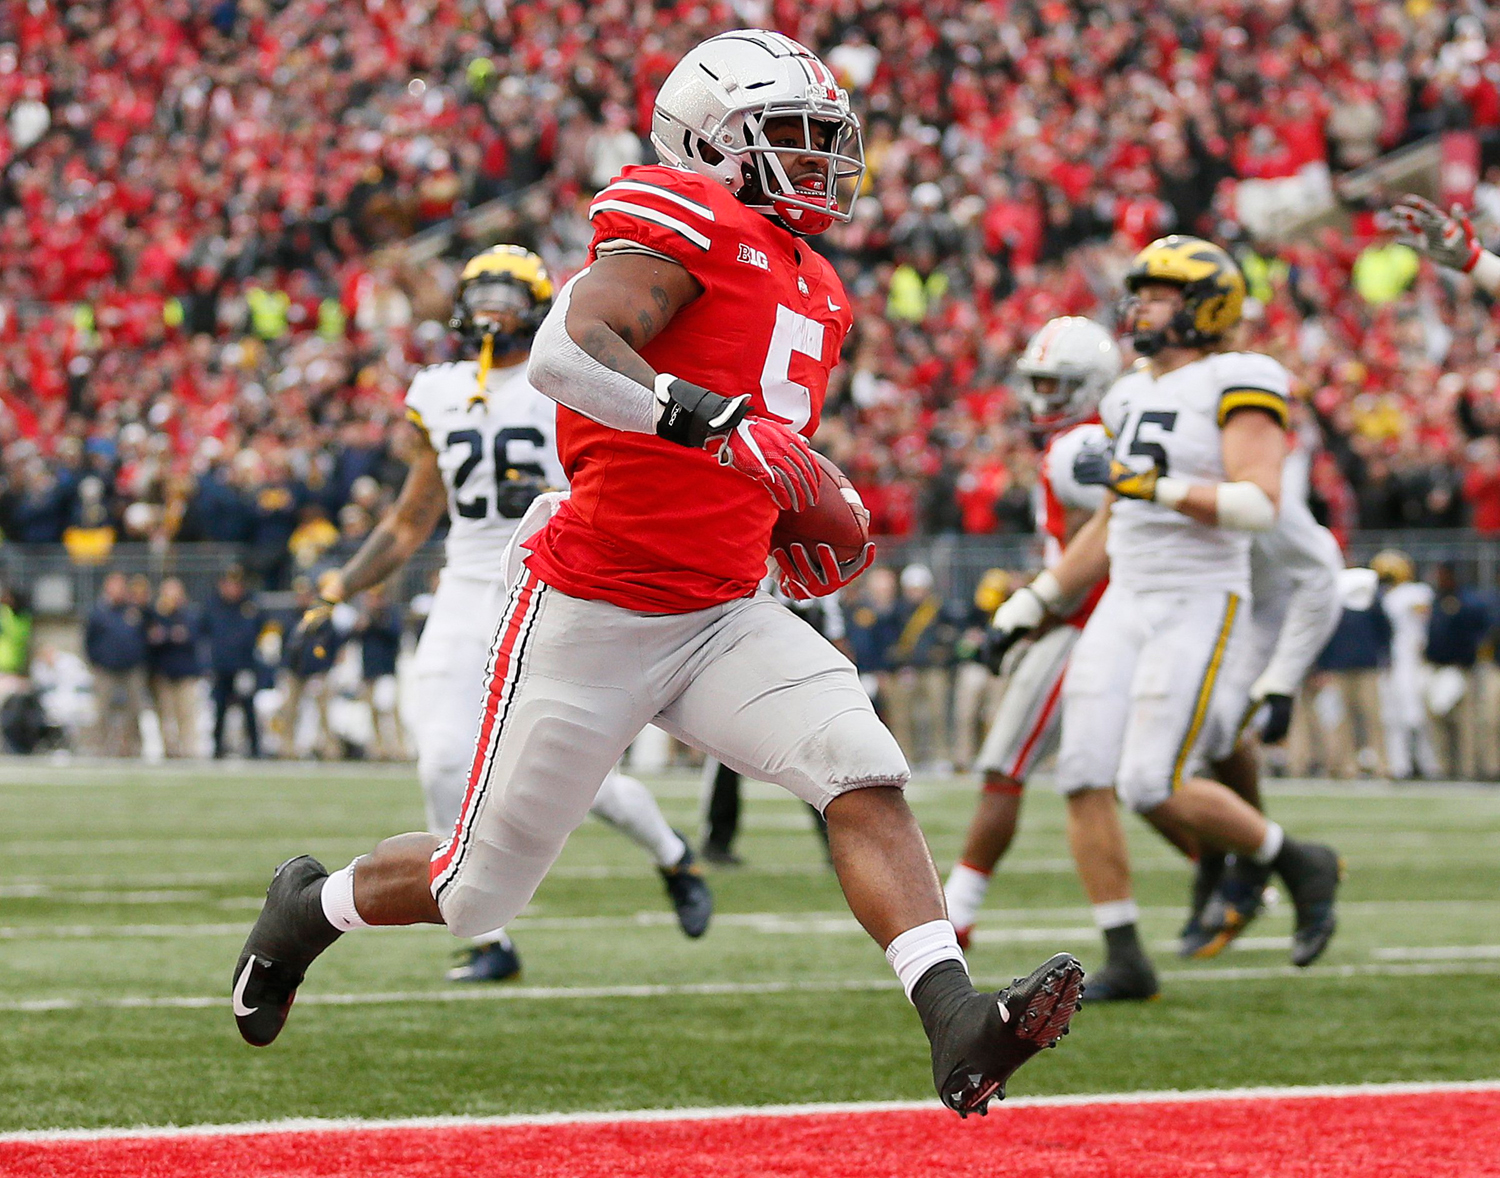 Ohio State running back Mike Weber Jr. (5) scores a rushing touchdown during the third quarter against Michigan on Saturday. Ohio State won, 62-39.